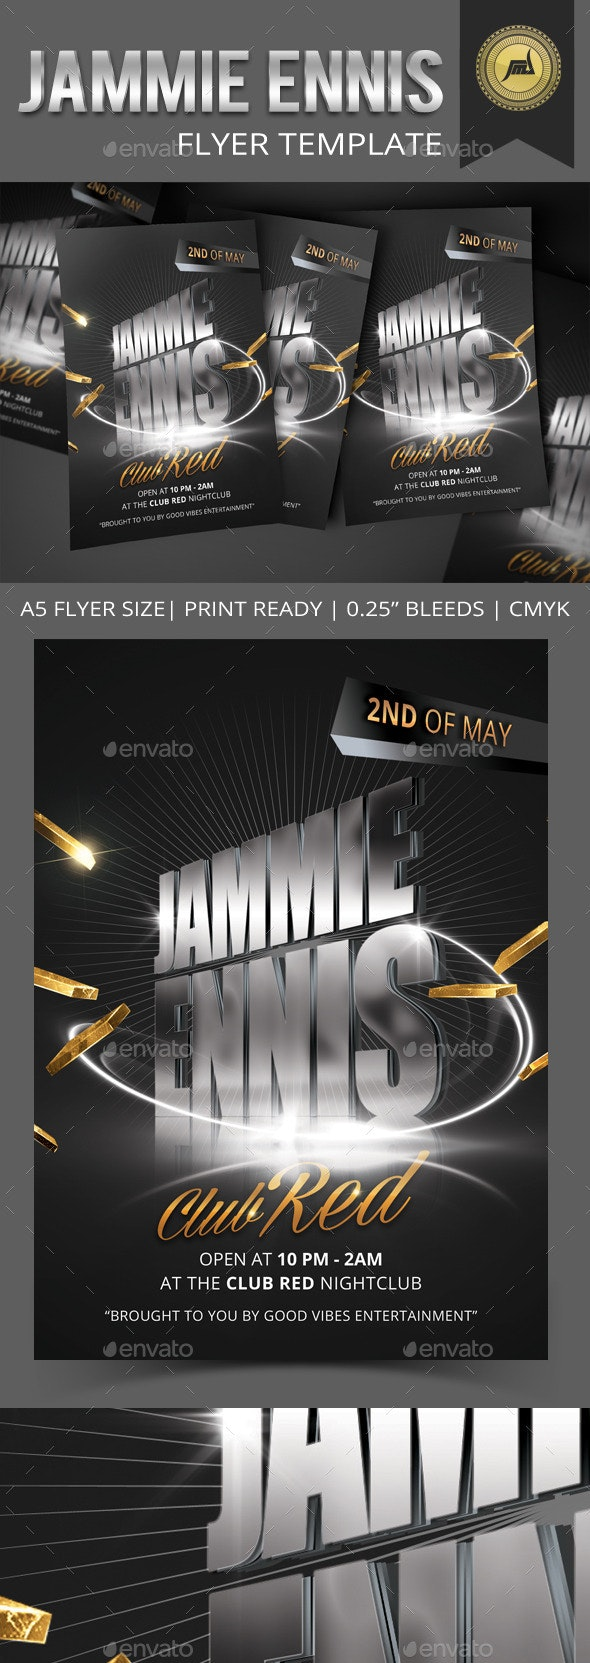 Jammie Ennis Flyer Template - Clubs & Parties Events